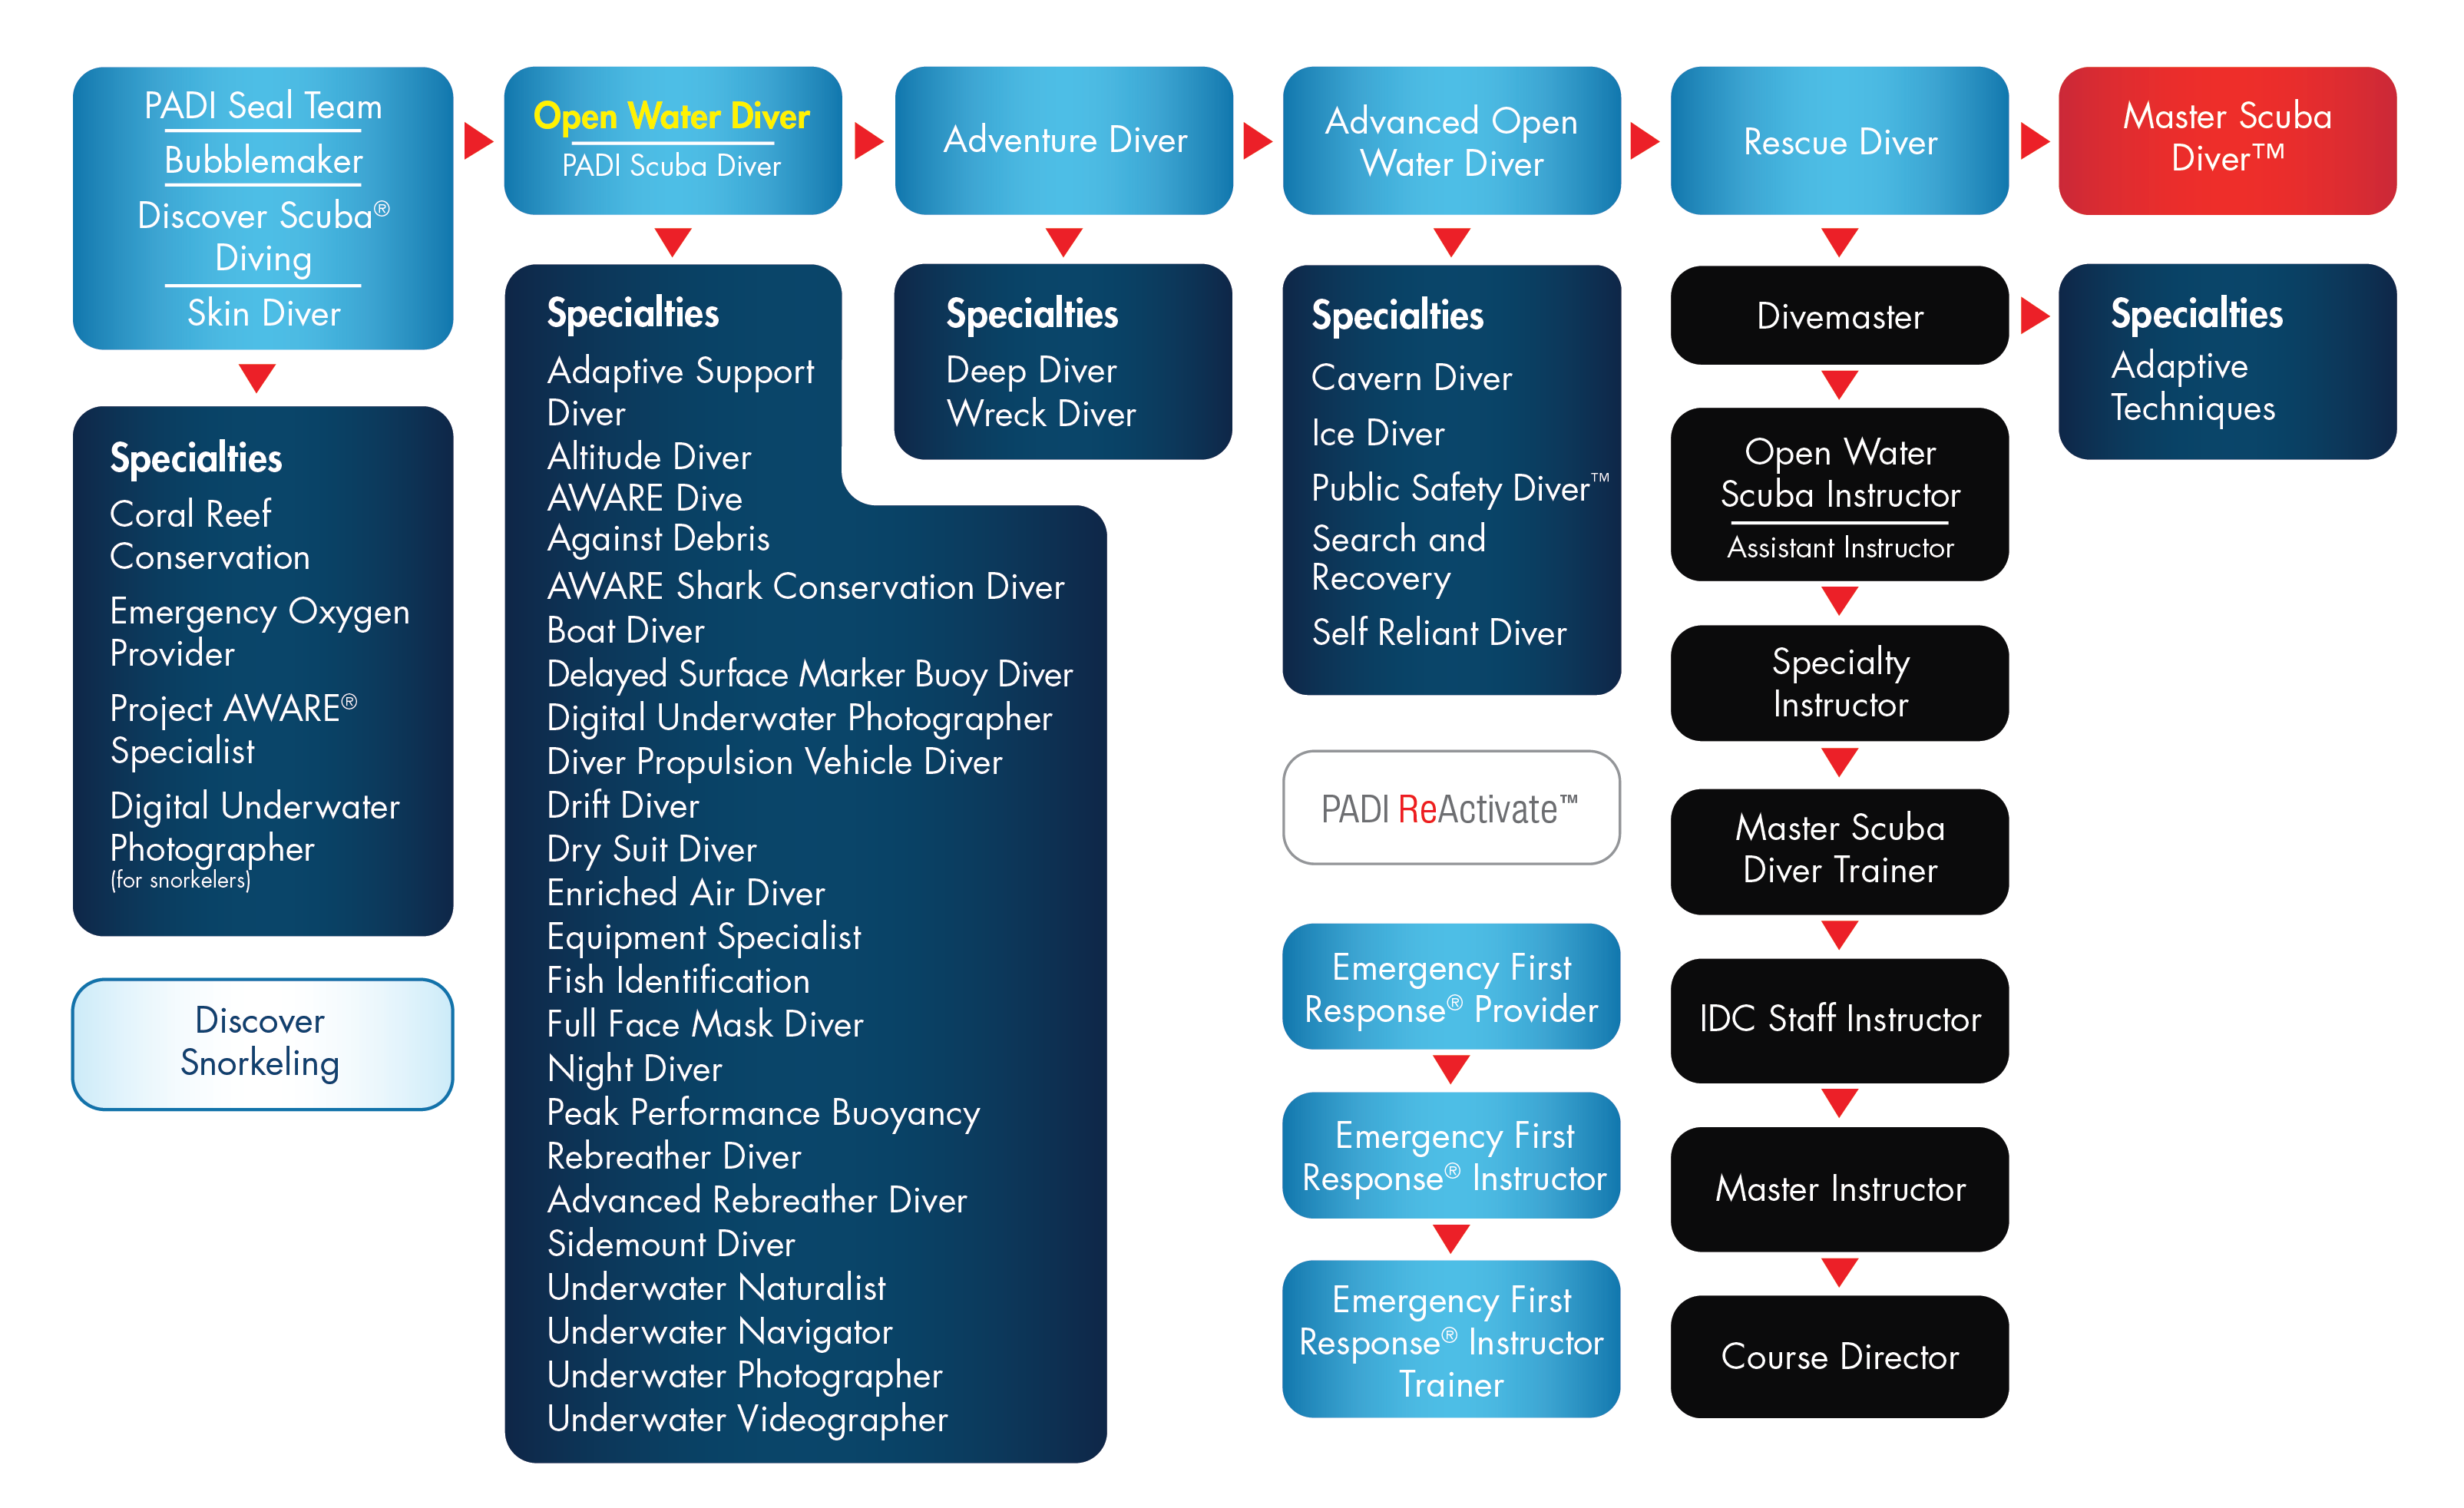 Flowchart showing the levels of PADI certification